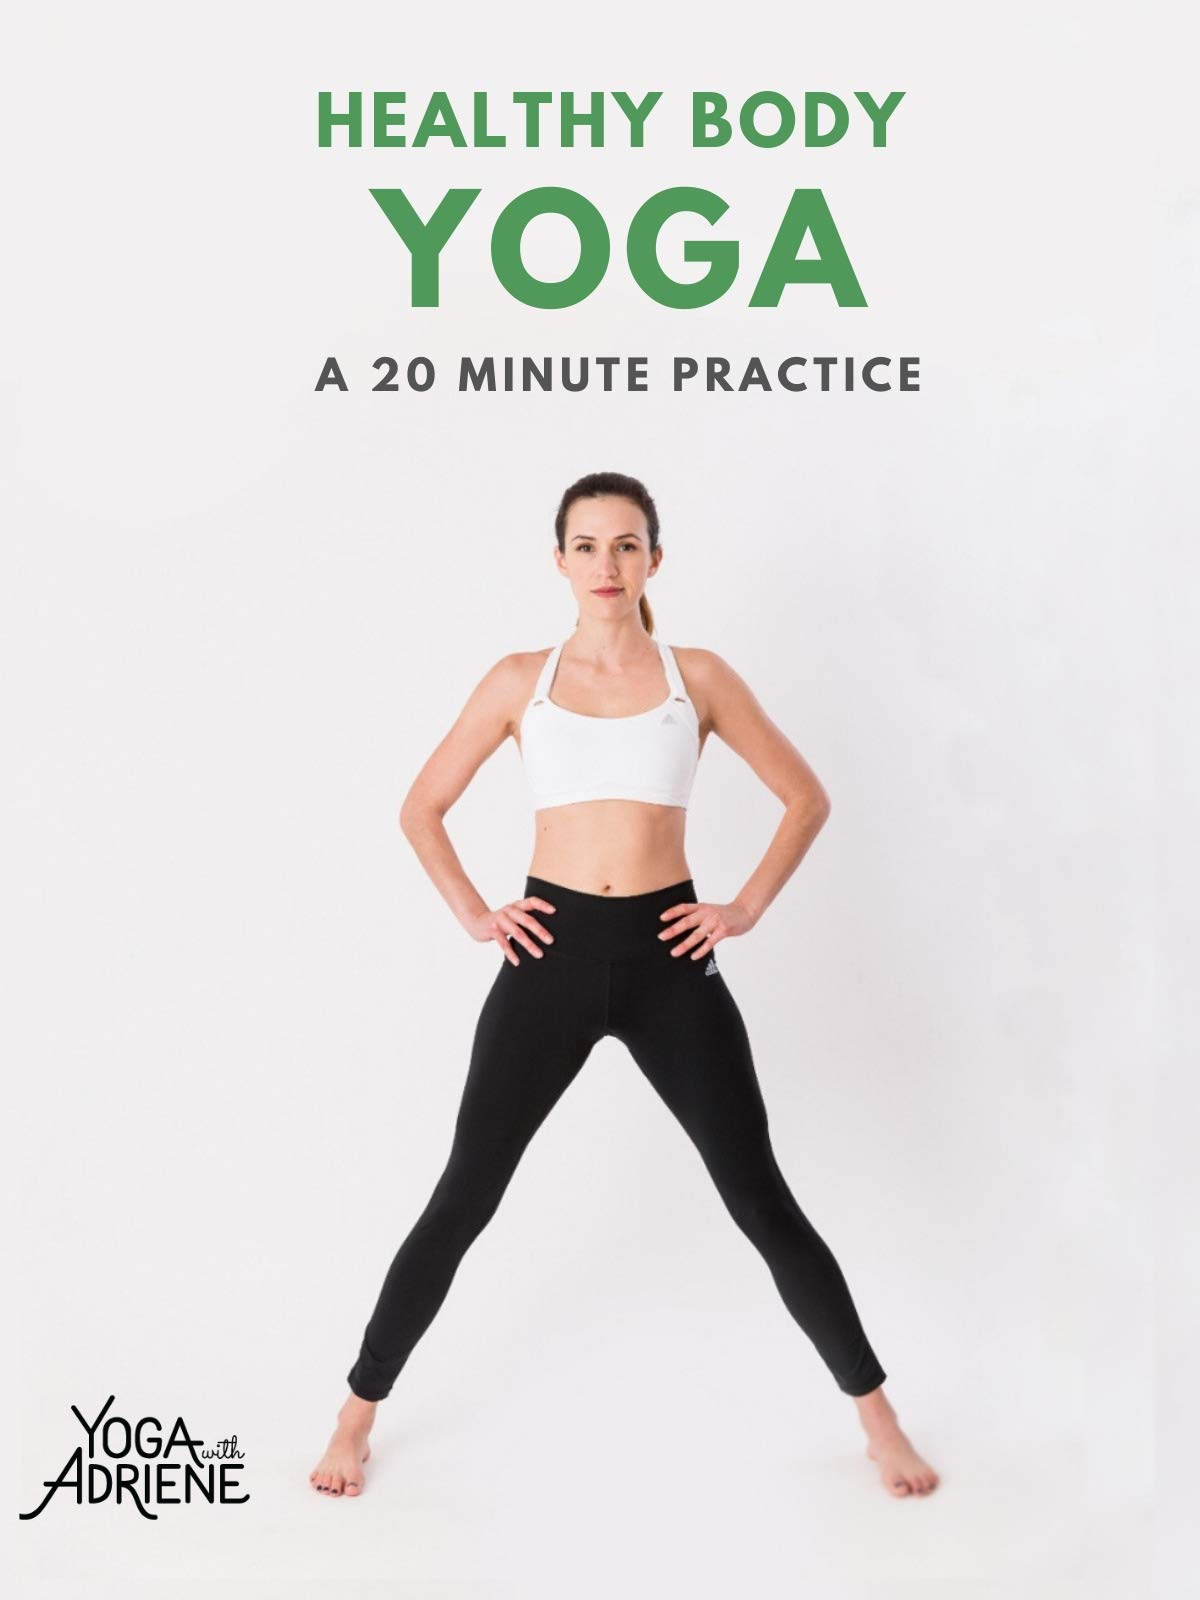 Amazon.com: Yoga With Adriene: Healthy Body Yoga: Adriene ...